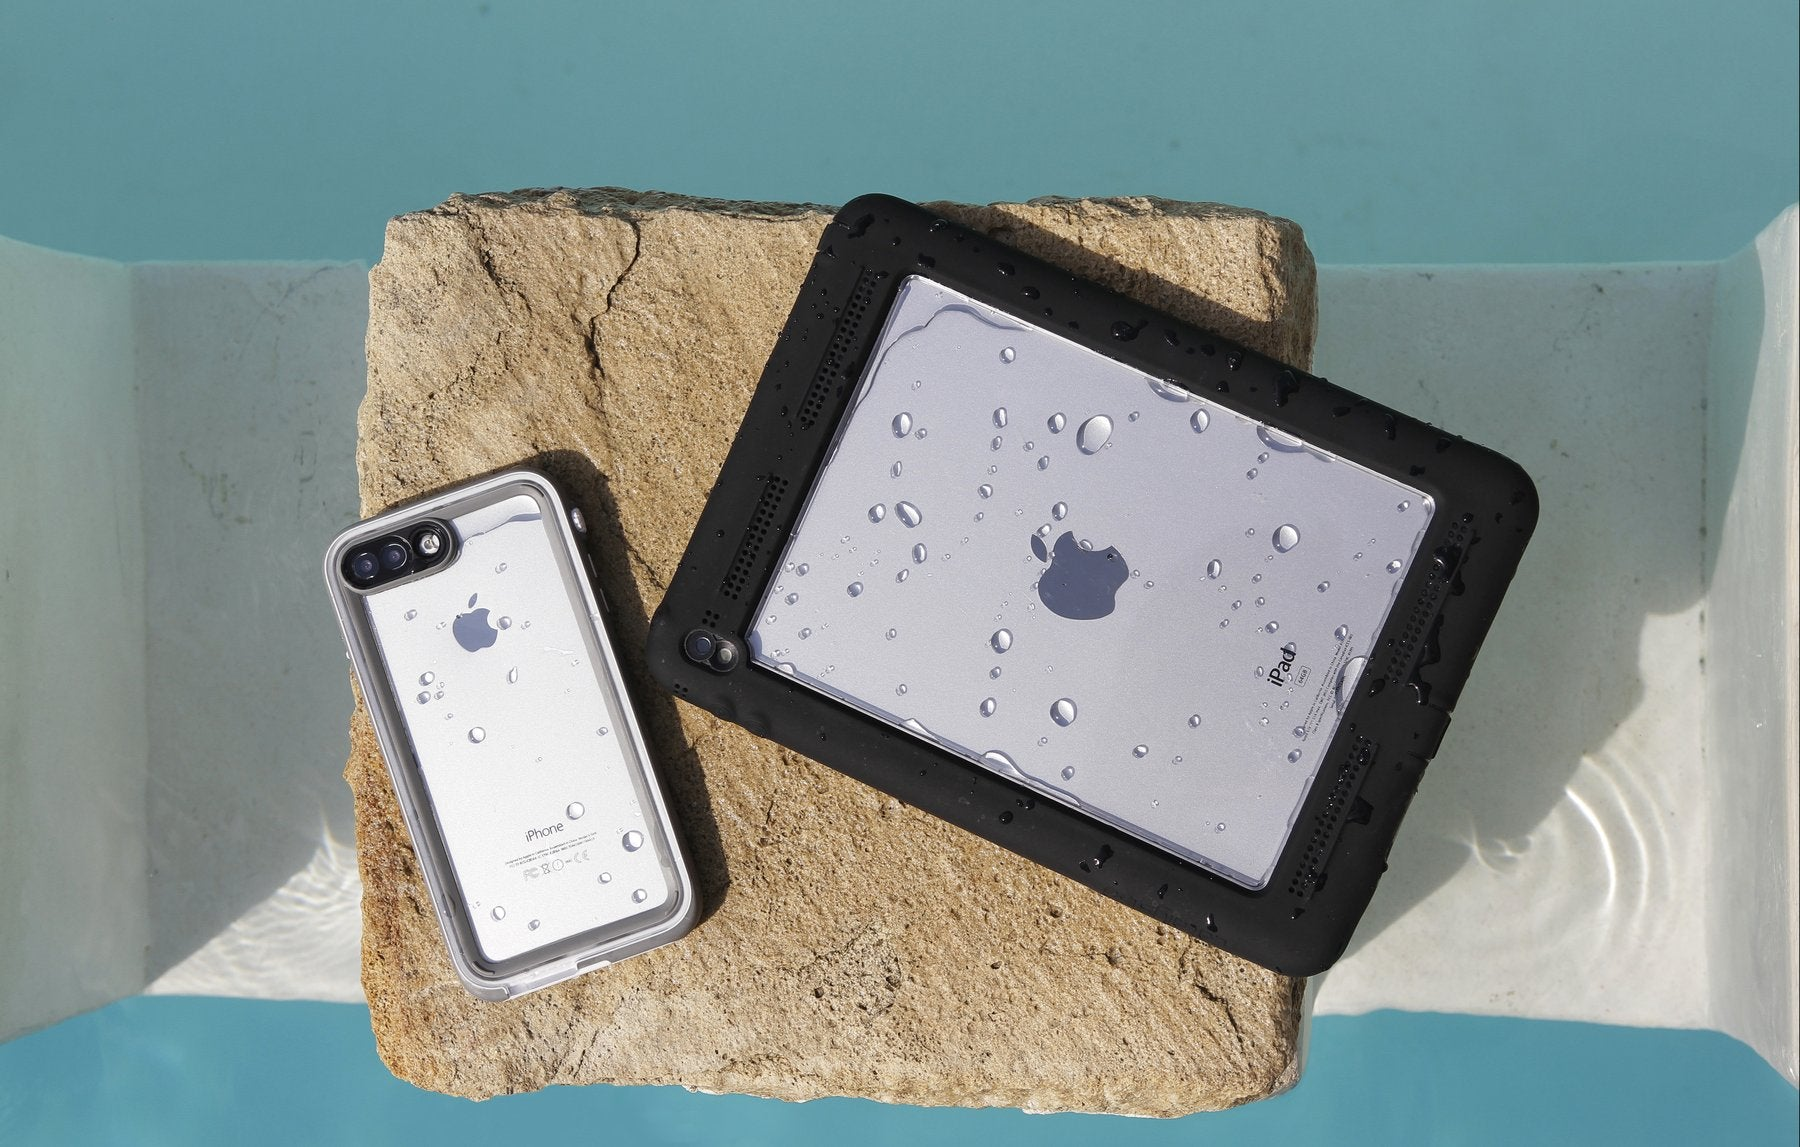 Catalyst - World's Highest Rated Waterproof iPhone Case